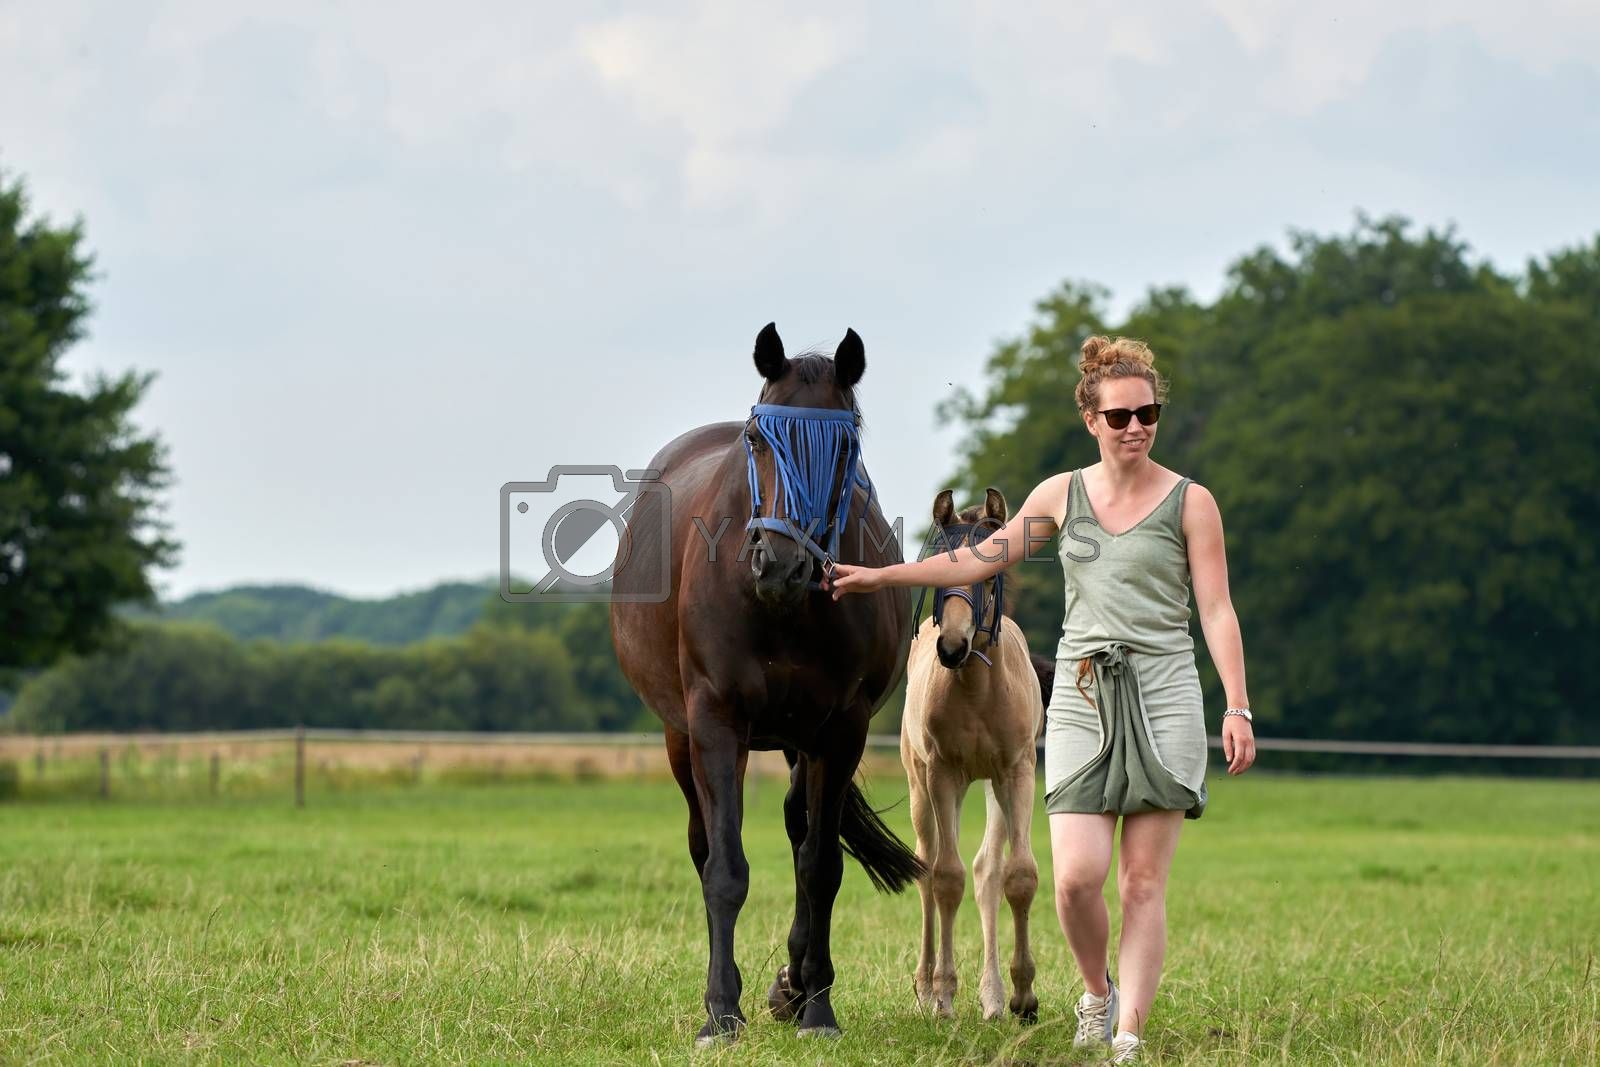 A falcon color foal and a brown mare in the field, with a fly mask on, the woman is holding the mare.